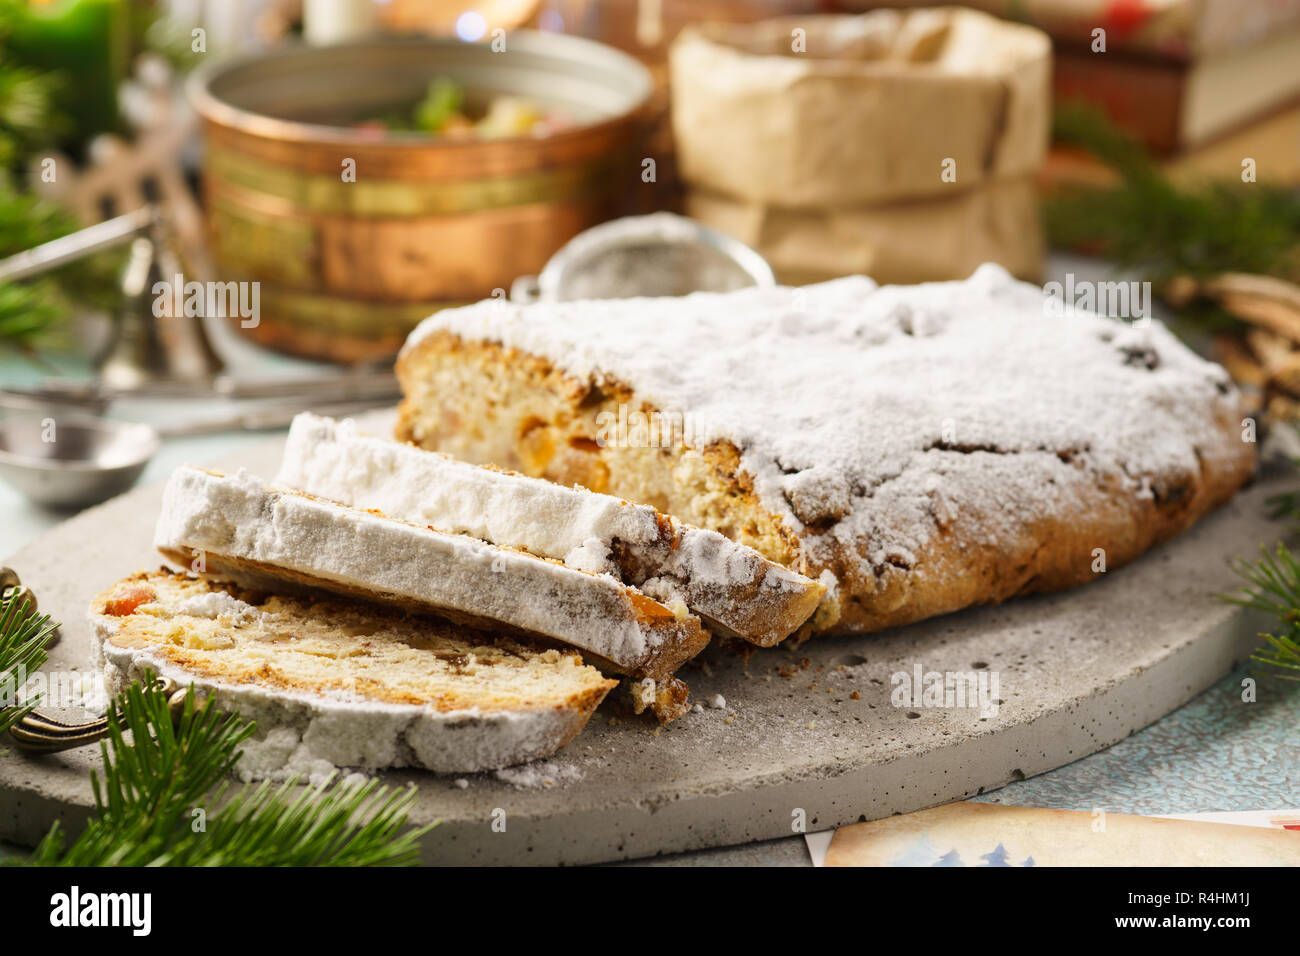 Traditional German stollen, sweet cake with candied fruit and raisins. Christmas sweet gift idea. Selective focus. - Stock Image